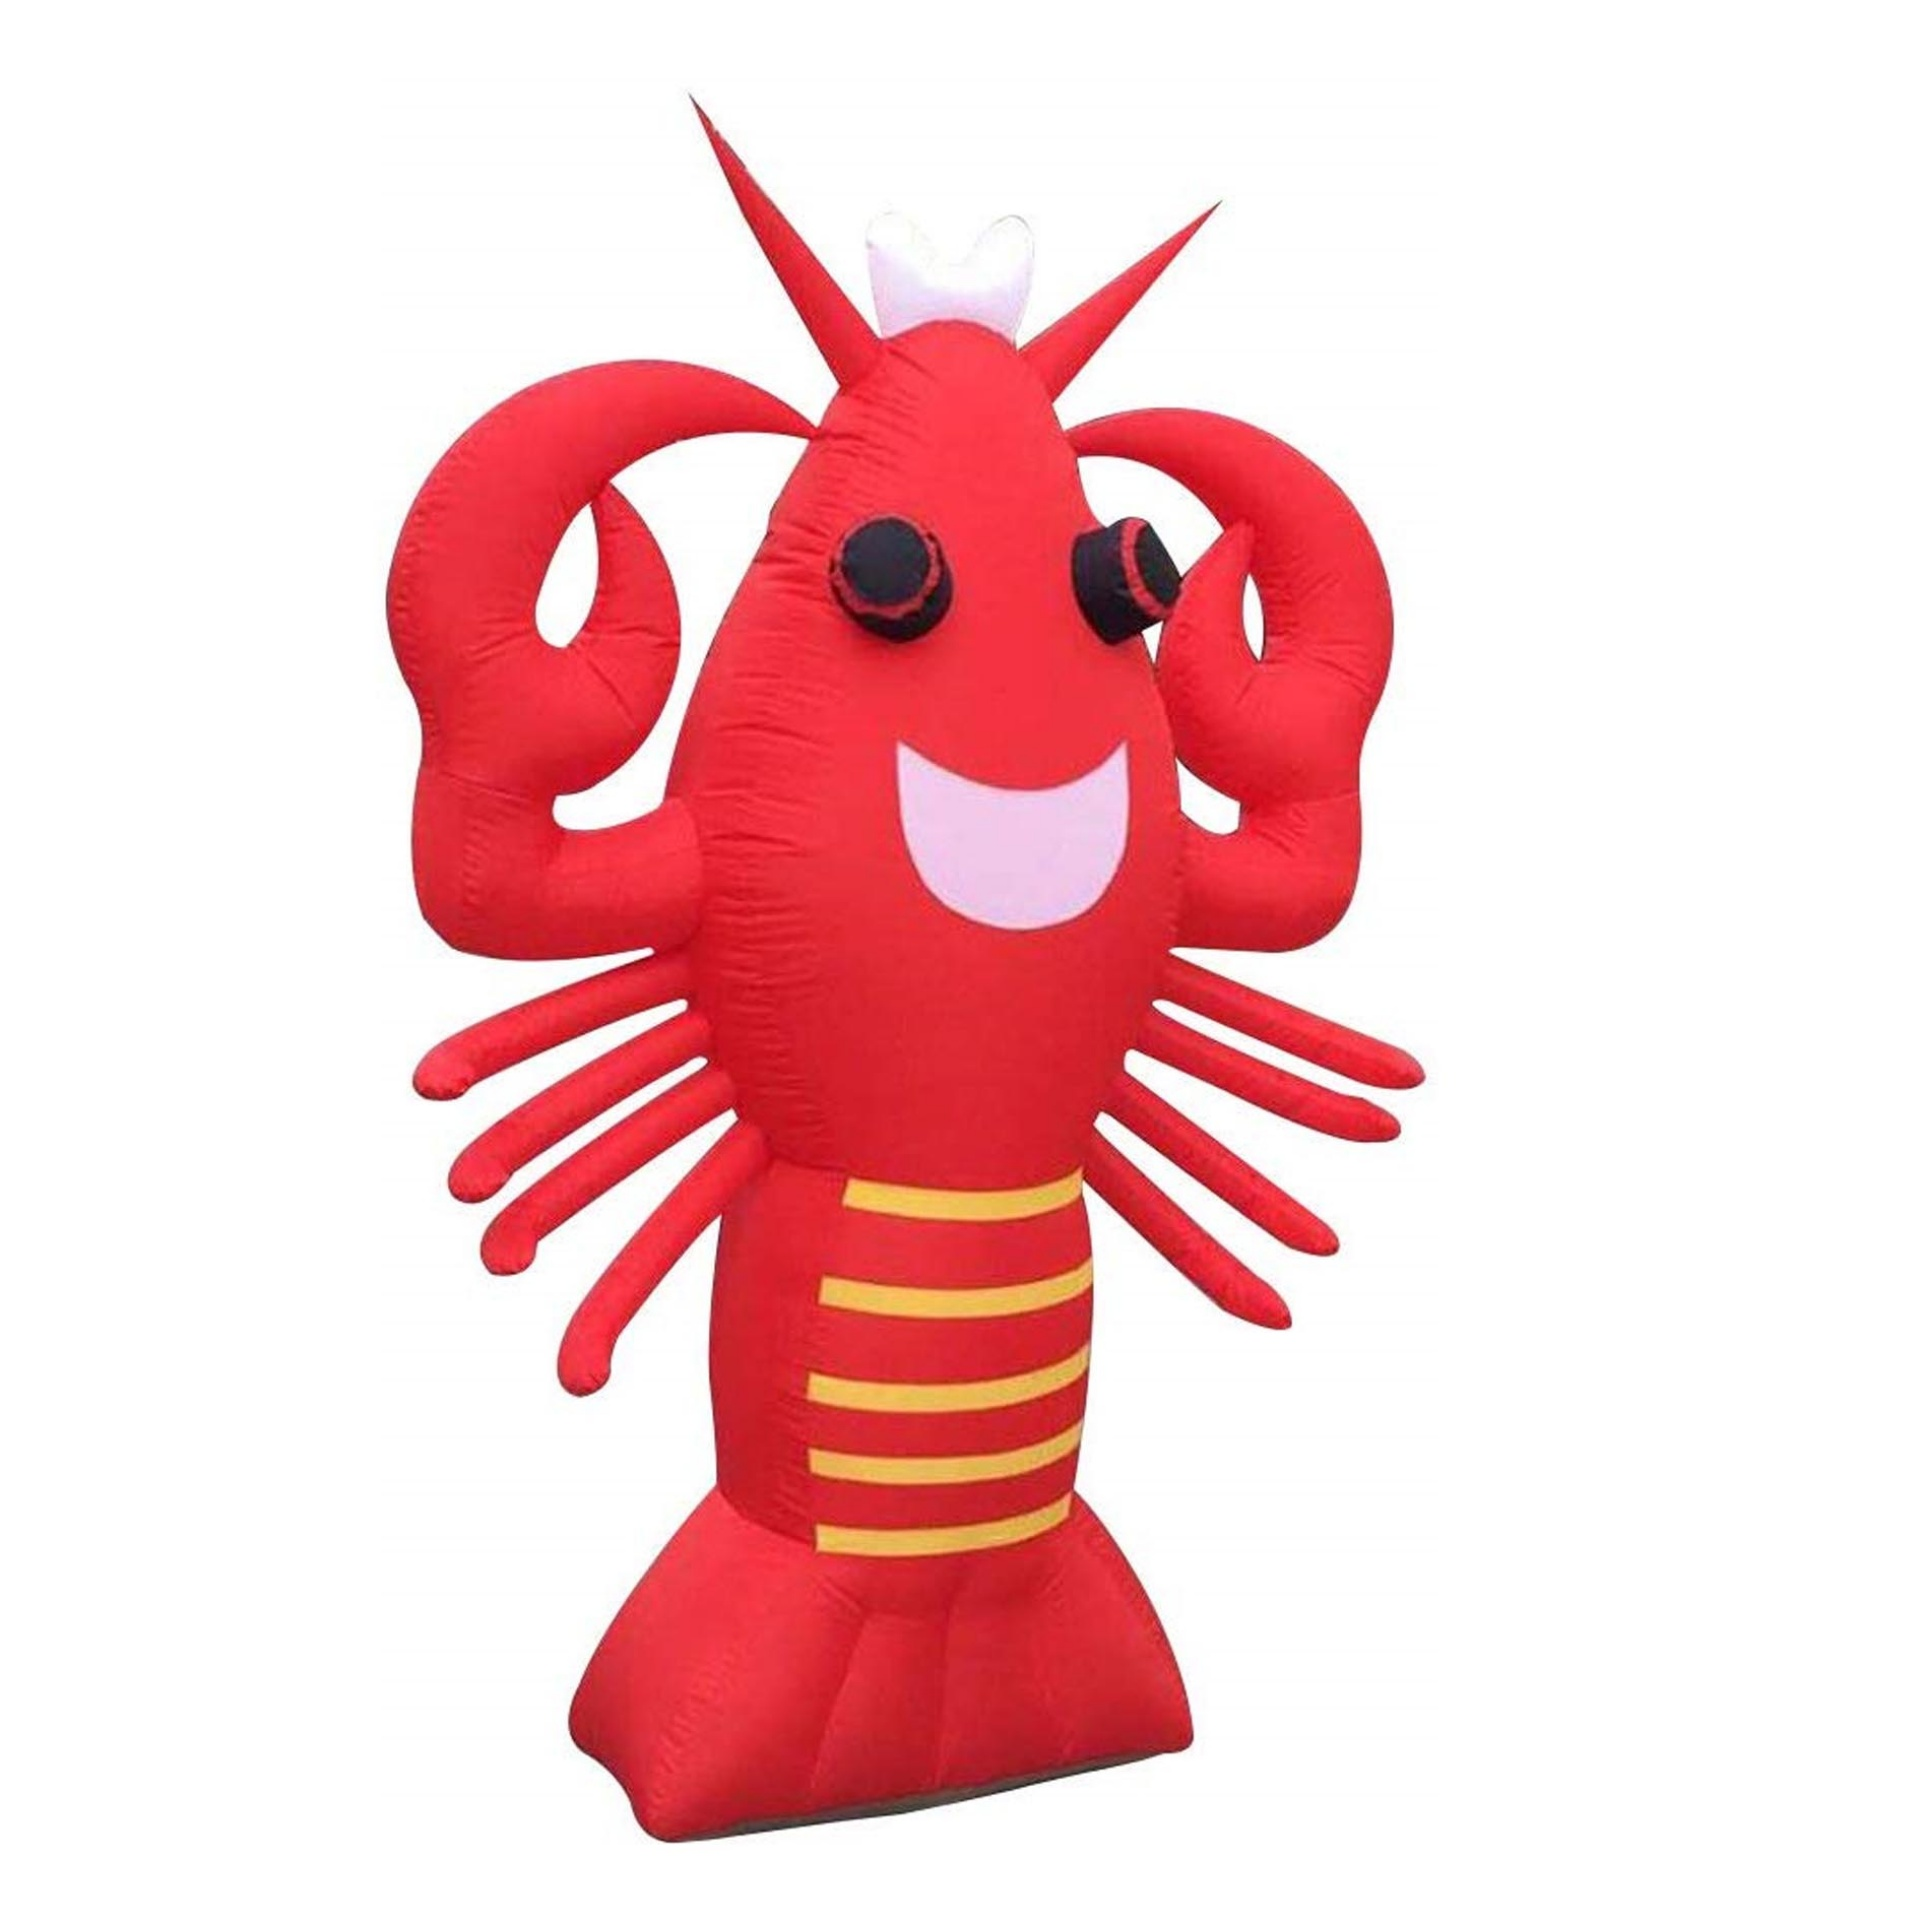 Inflatable Lobster Advertising Display Giant Attractive Restaurant Decoration